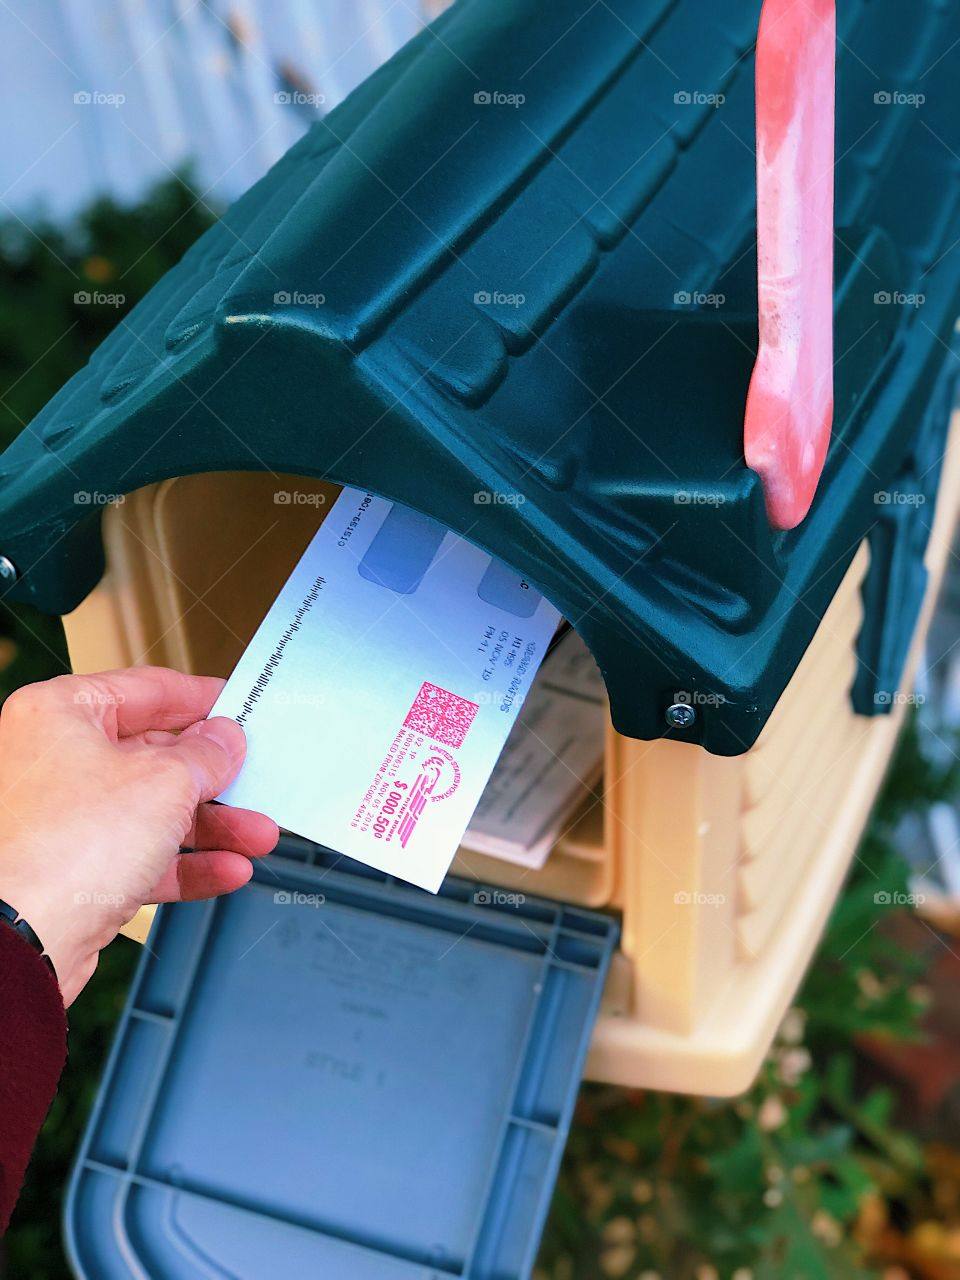 Woman Mailing Letter, Woman Getting Mail, Mailbox With Letter, Flag Up On Mailbox, Letter In Mailbox, USPS, Bills In The Mailbox, Residential Mailbox, Daily Routines, Daily Chores, Postage On Mail, Mailbox At Home